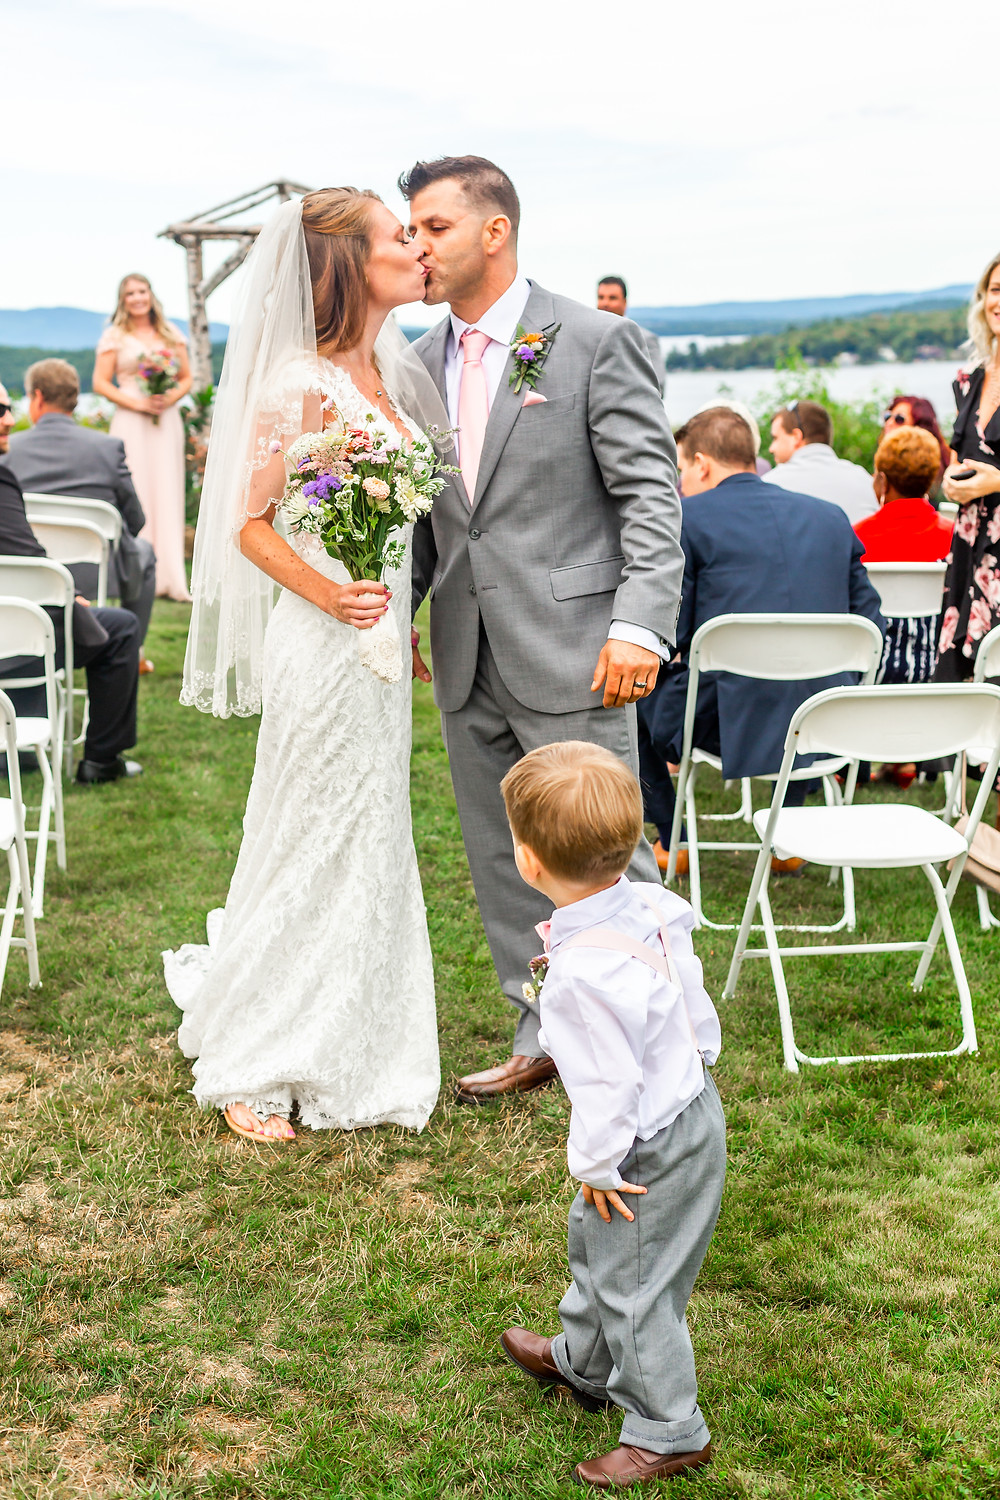 The kiss captures by Elizabeth Ivy Photography, intimate wedding photographer based out of Wells Maine.